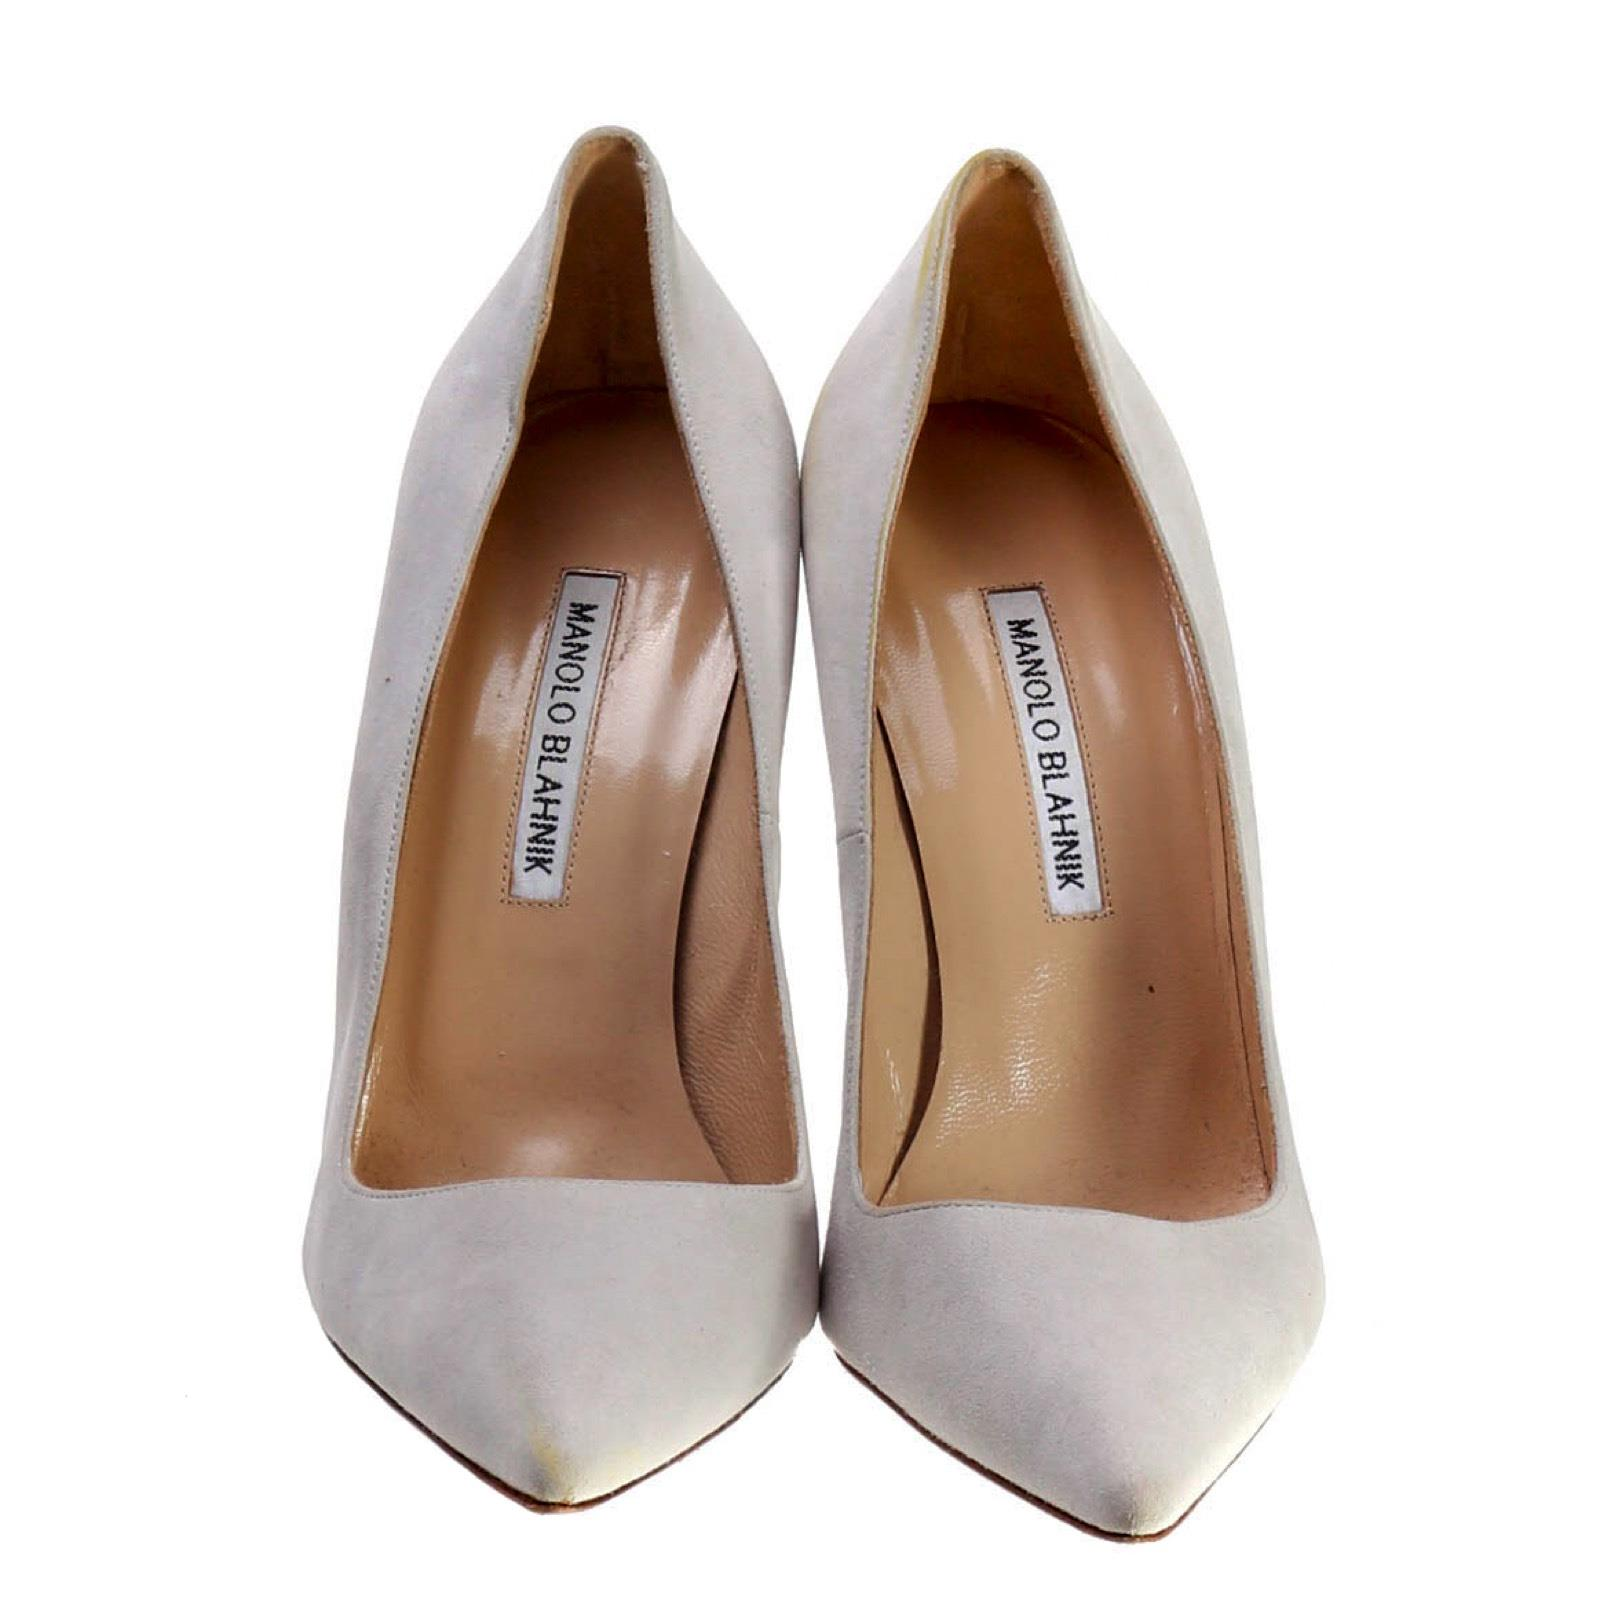 1585692e1f0ef House of Cards Claire Robin Wright Screen Worn Manolo Blahnik Shoes Ep 312